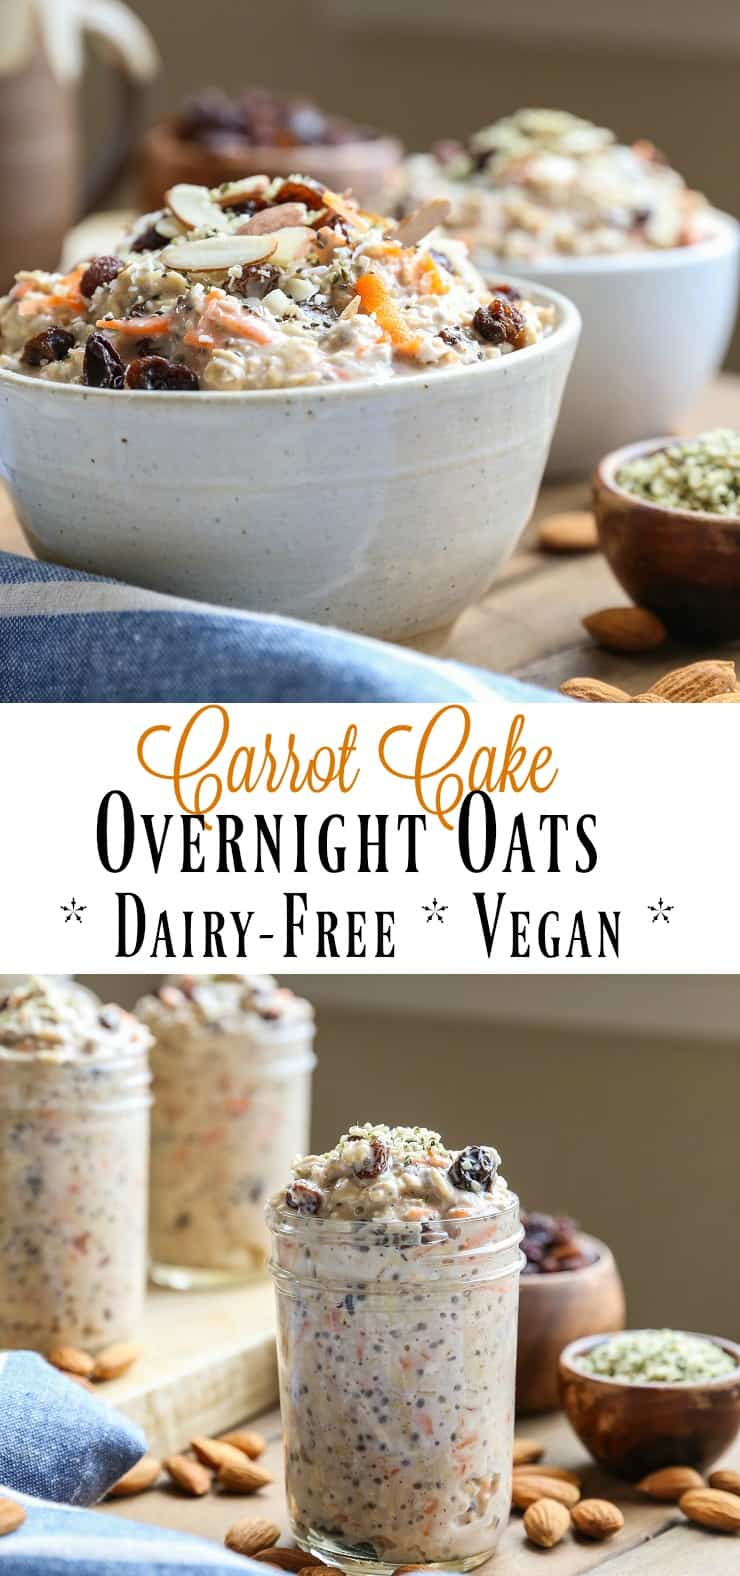 Carrot Cake Overnight Oats - packed with protein, complex carbs, veggies, and prebiotics for a gut-healthy breakfast #vegan #glutenfree #healthy